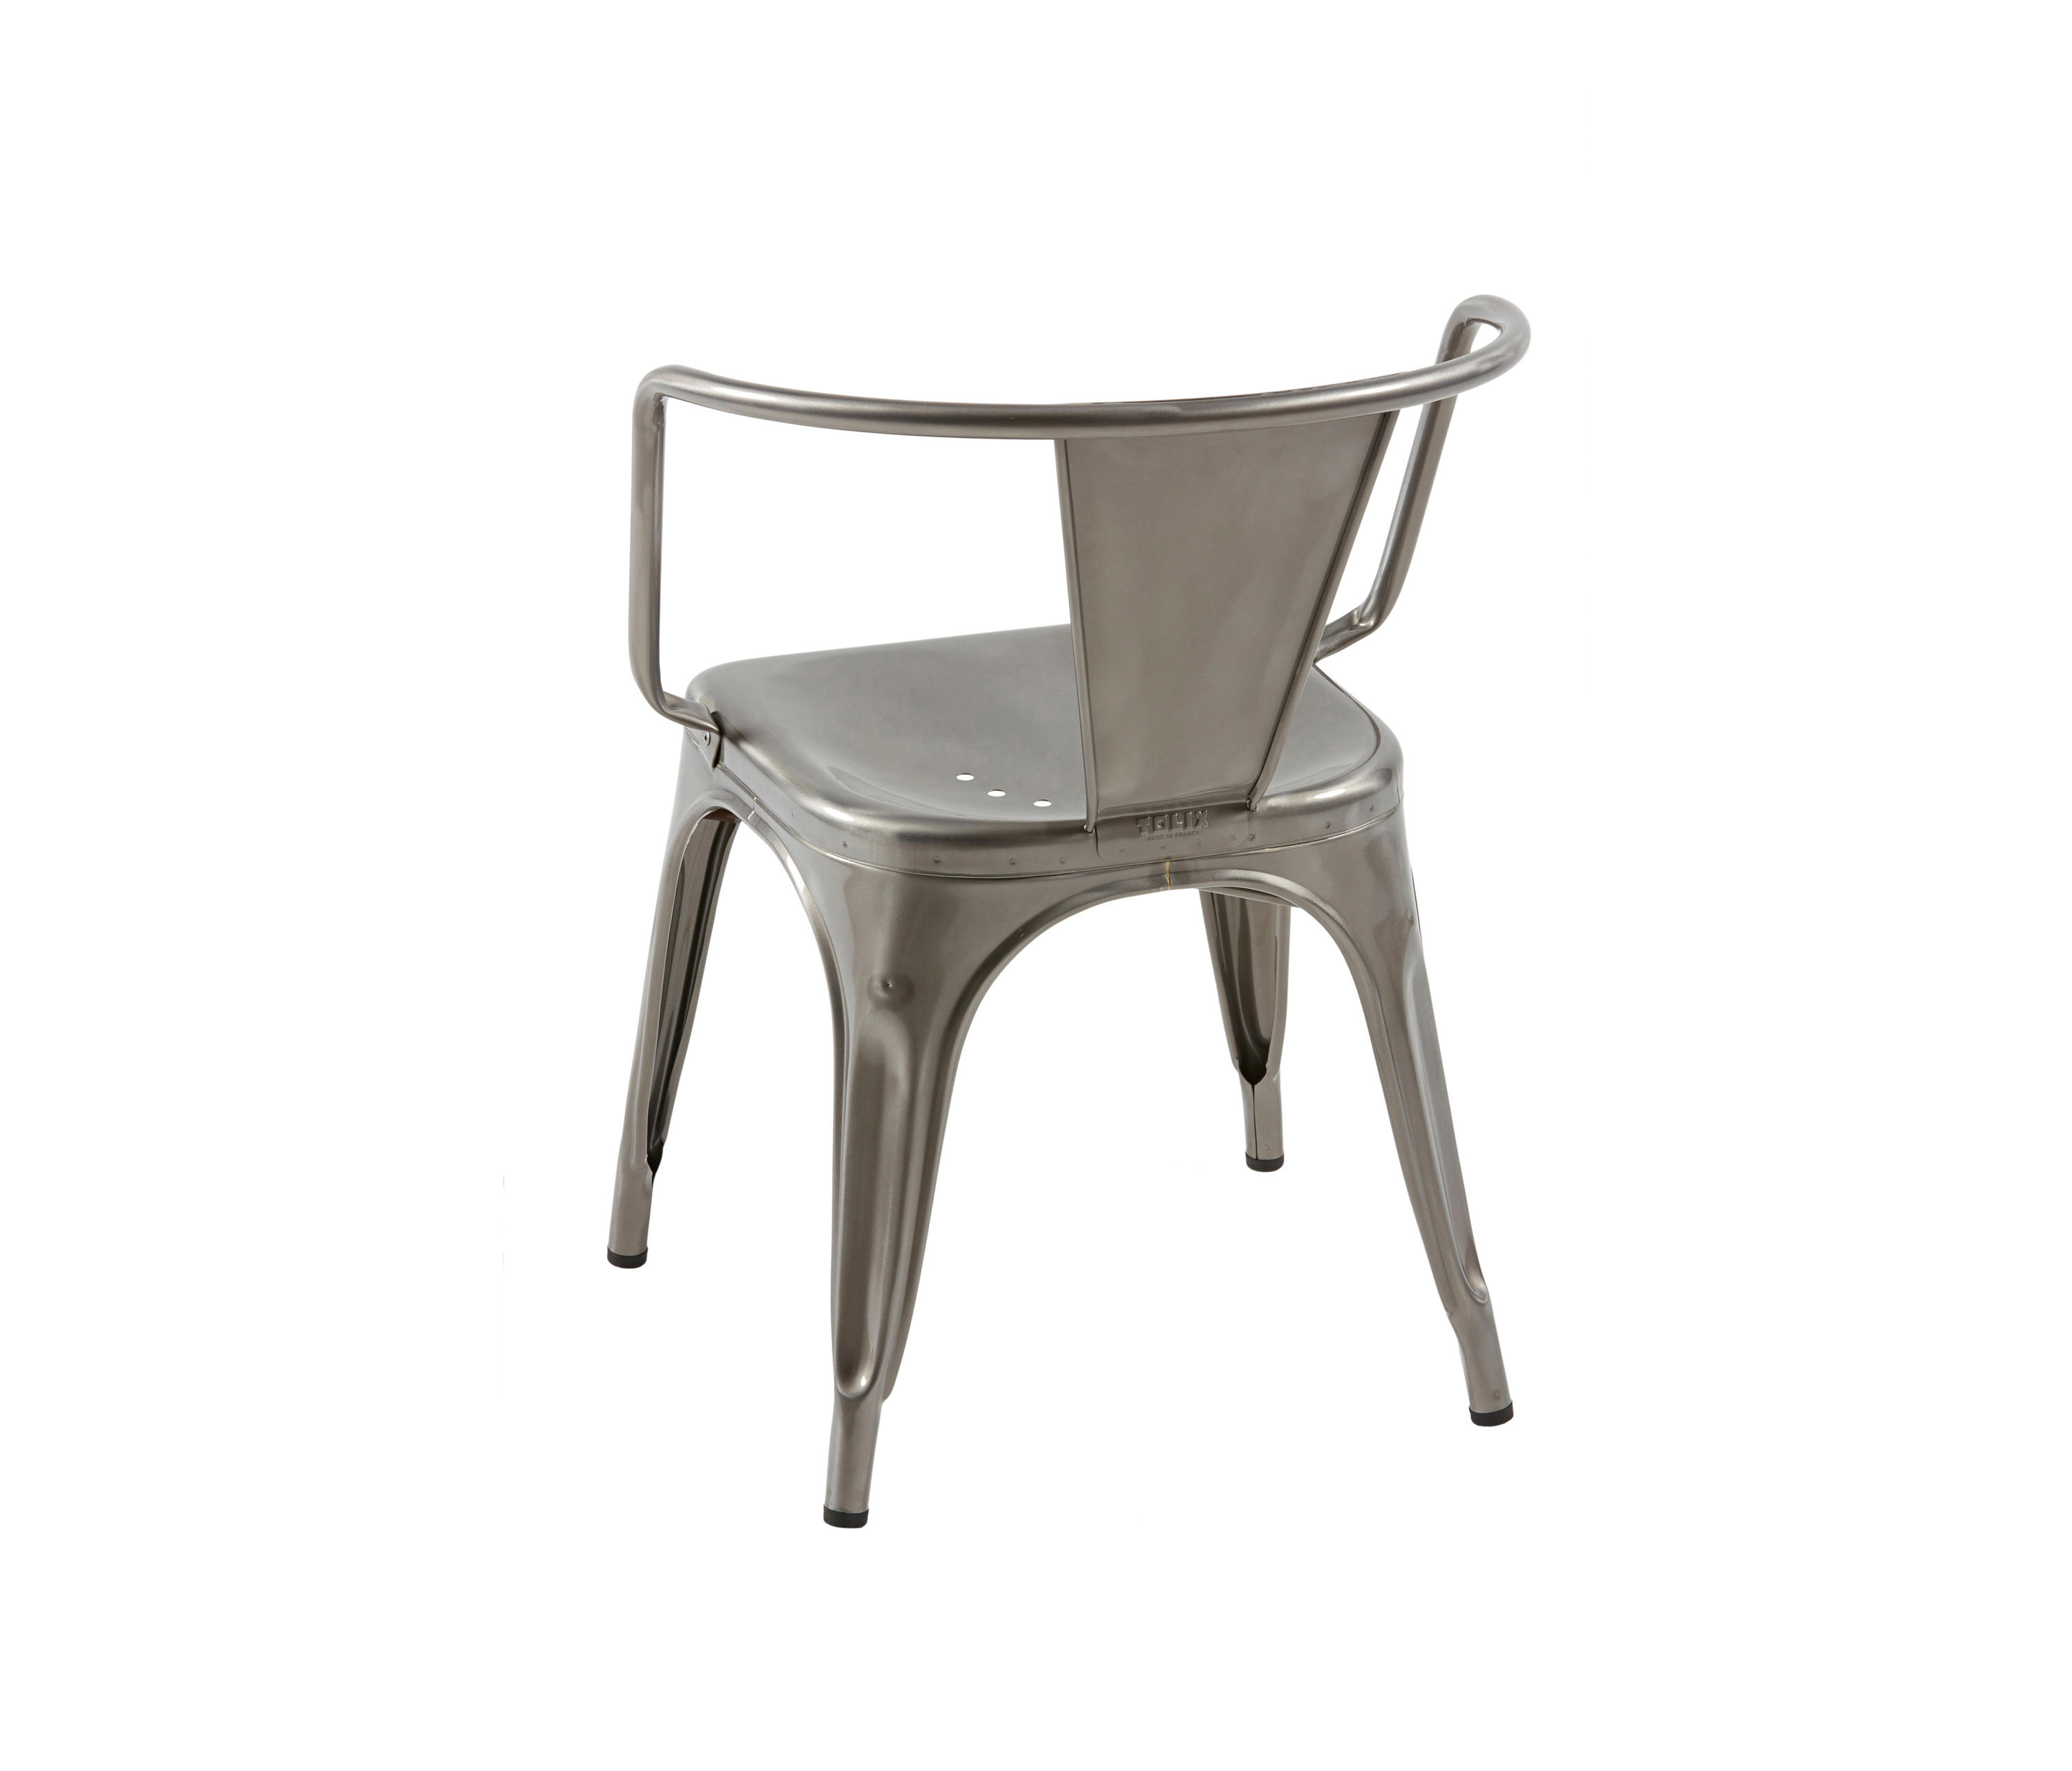 cha a flat cushion refgalette chair seat tolix anthracite prod and chairs al by for anthr